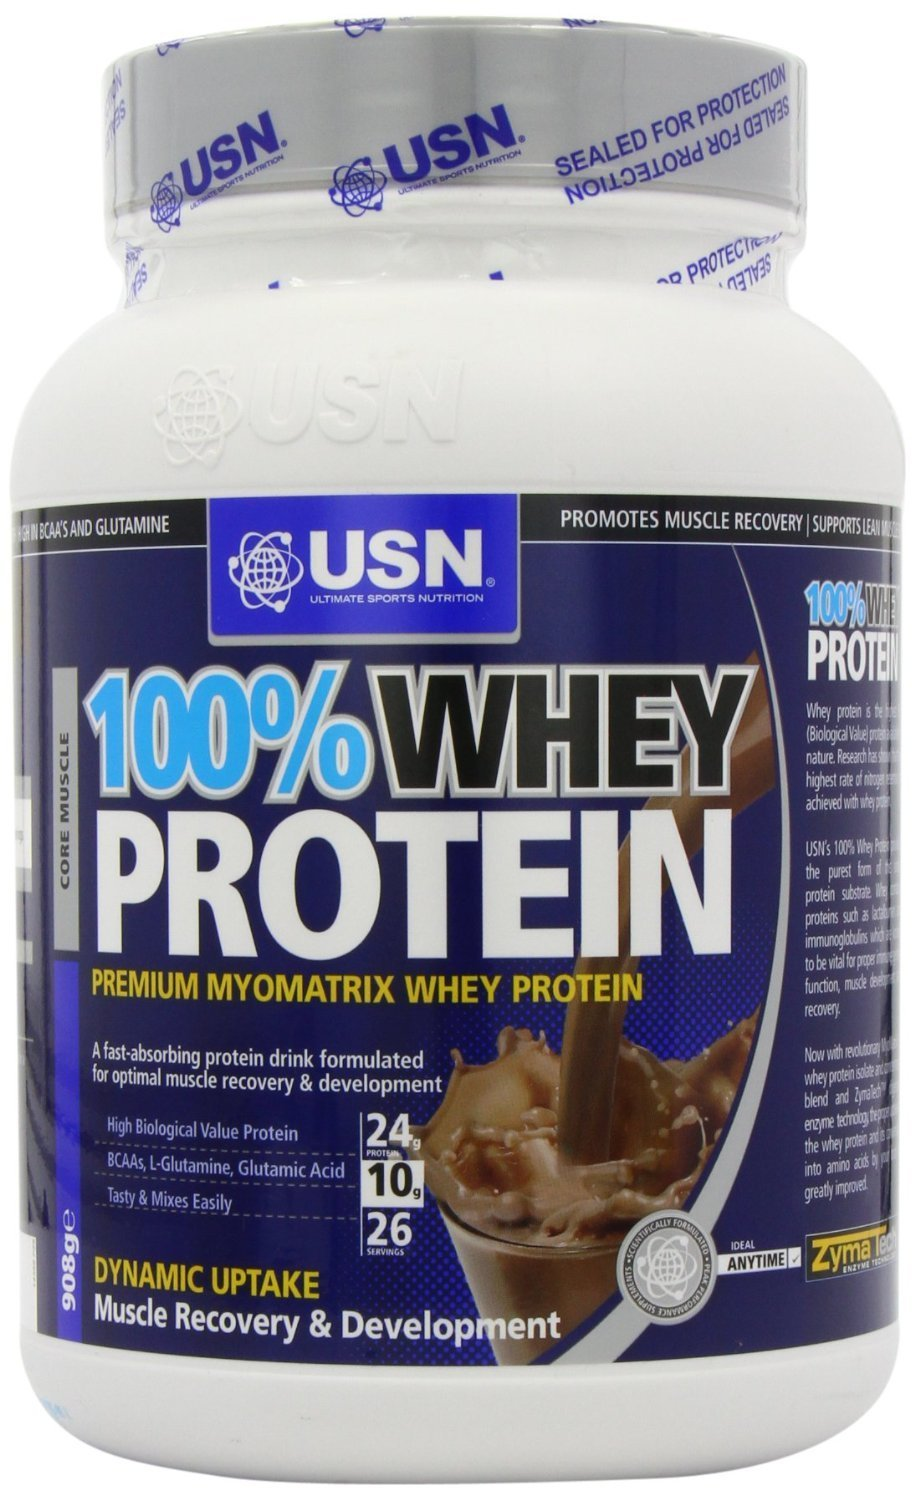 USN 100% Whey Protein - Chocolate (908g) - Pack of 2